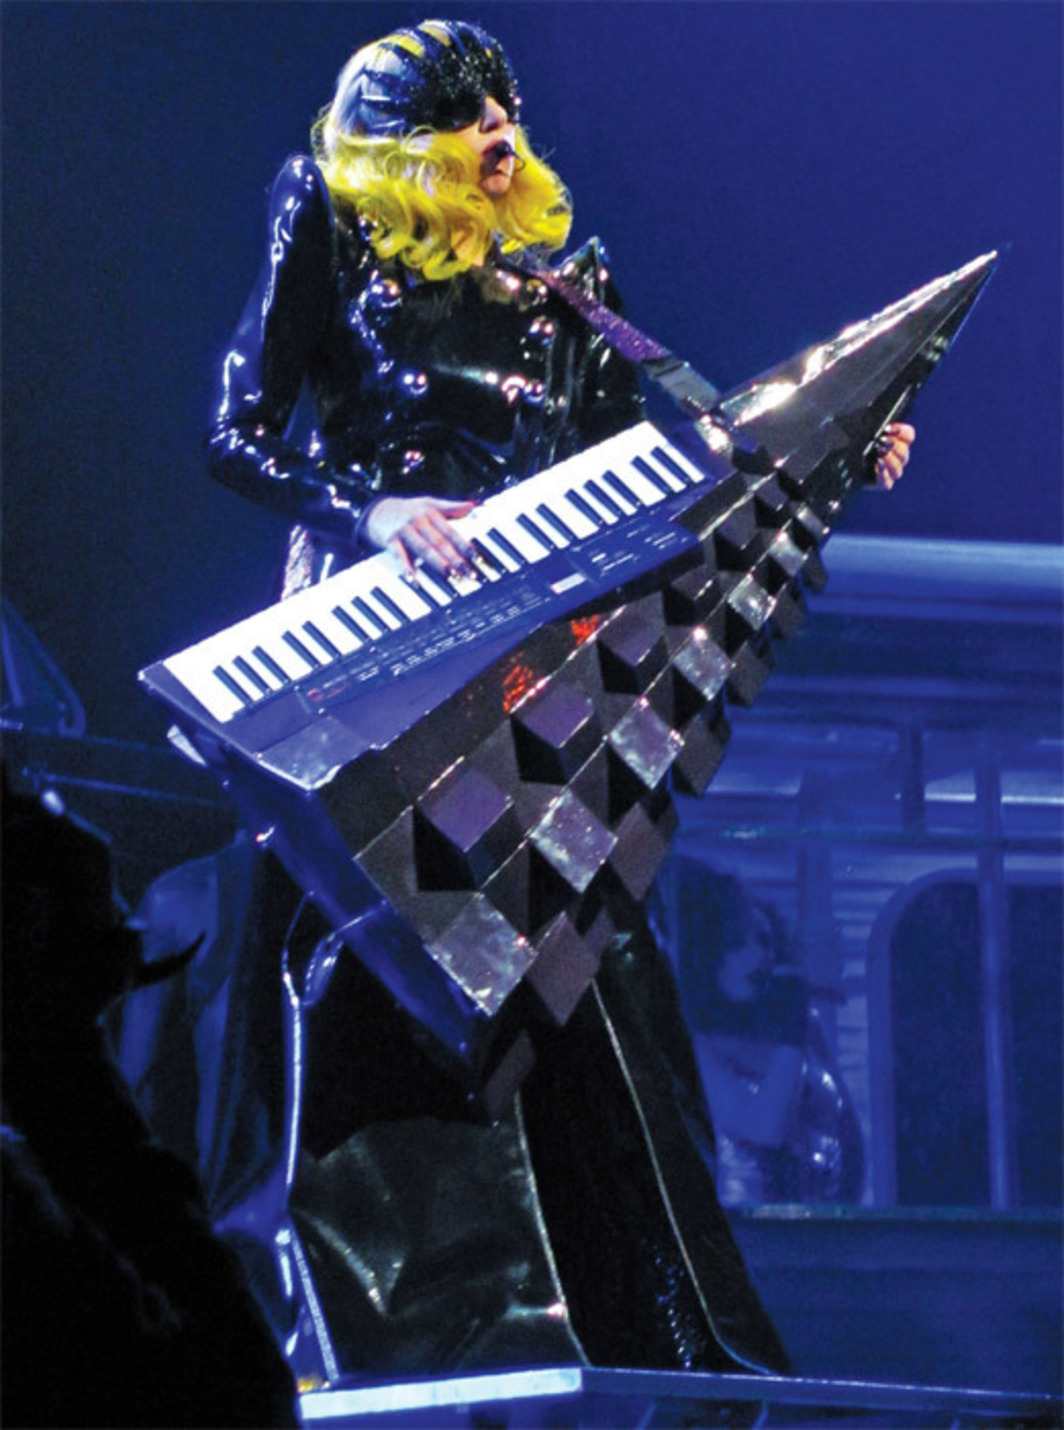 Lady Gaga playing a keytar during the Monster Ball Tour, Consol Energy Center, Pittsburgh, 2010. Photo: Anirudh Koul.